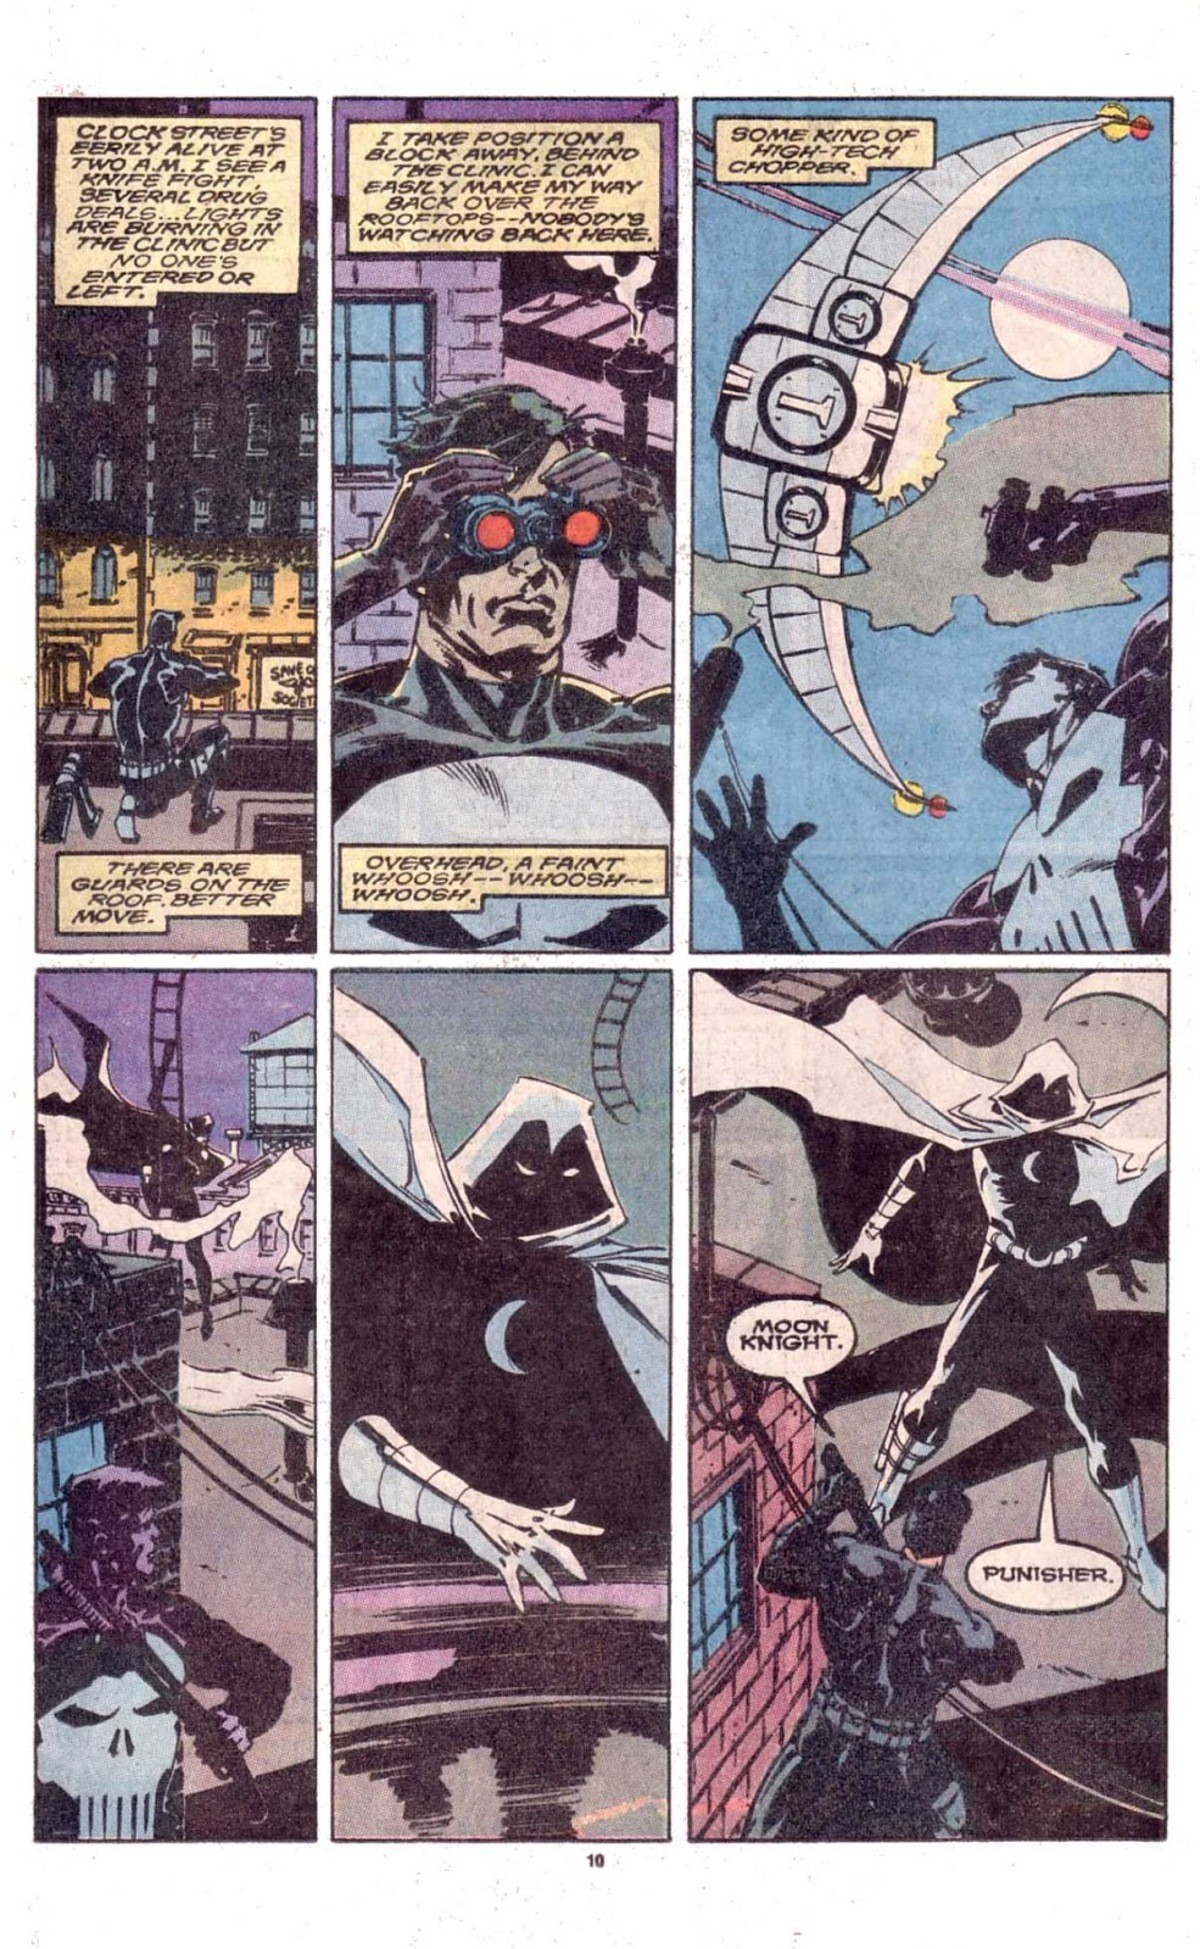 The Punisher and Moon Kht. Sauce: The Punisher (1987) Annual #2 https://readcomiconline.to/Comic/The-Punisher-1987/Annual-2?id=80517.. What a couple of gentlemen.